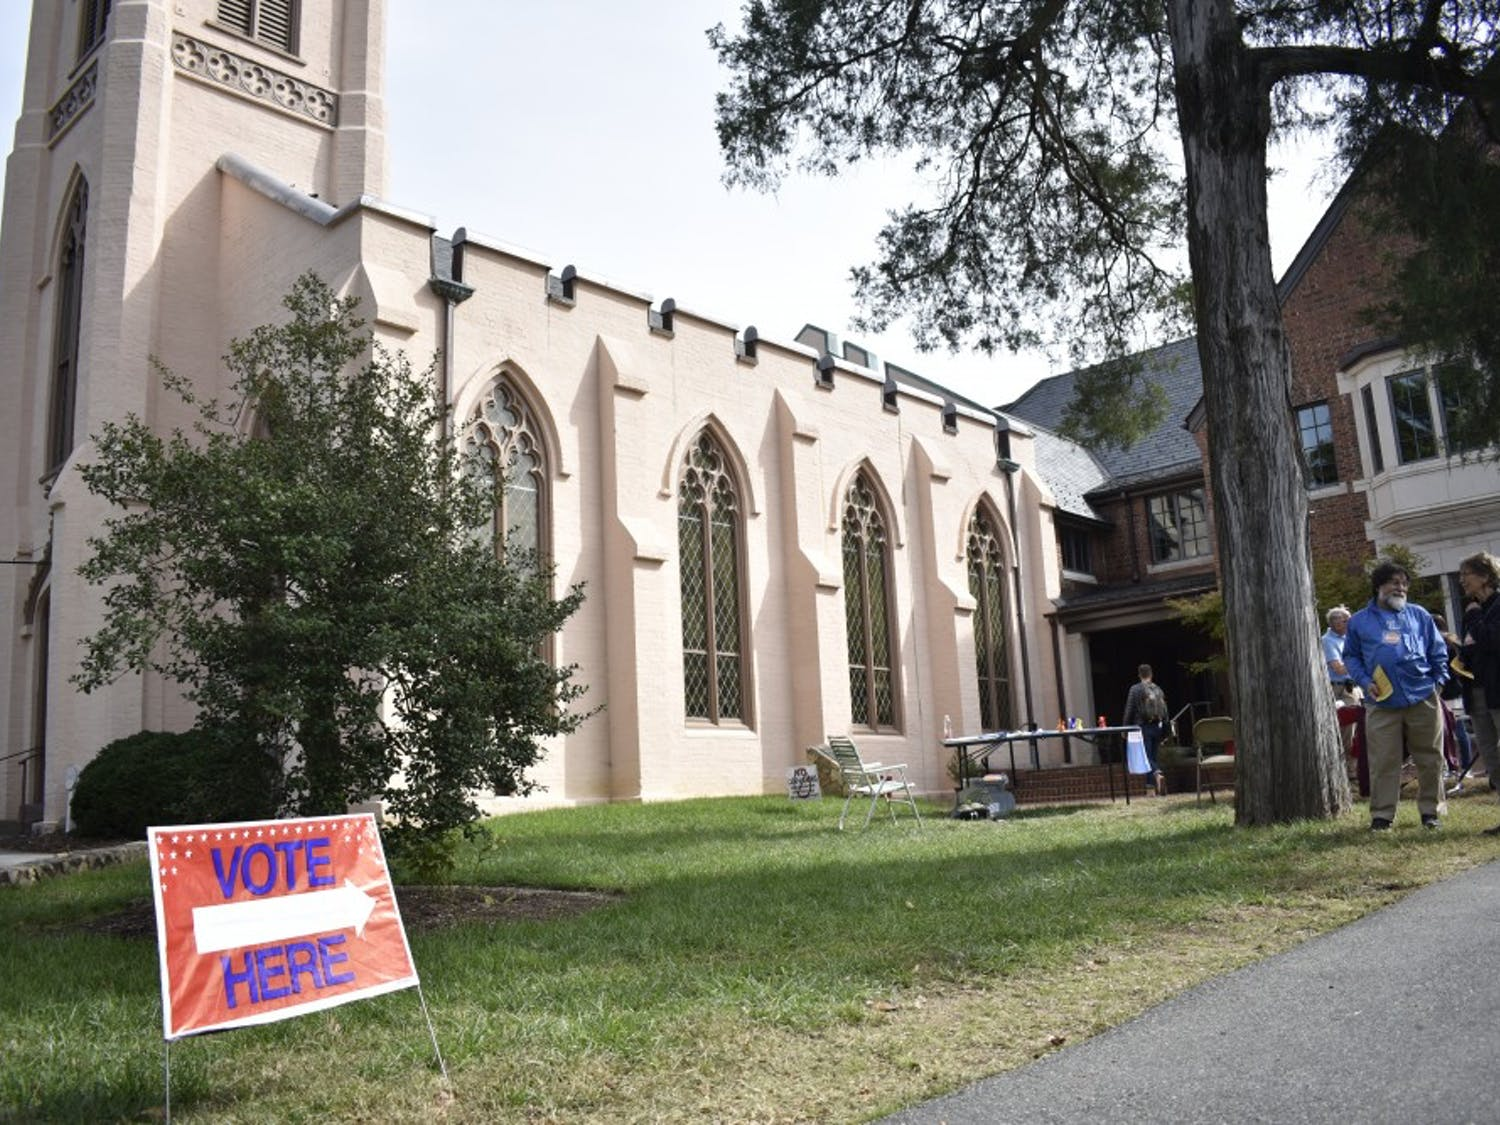 he Chapel of the Cross church at 304 E. Franklin St. on Oct. 23, 2018. The Chapel of the Cross severs as an early voter location close to the University of North Carolina at Chapel Hill's campus.